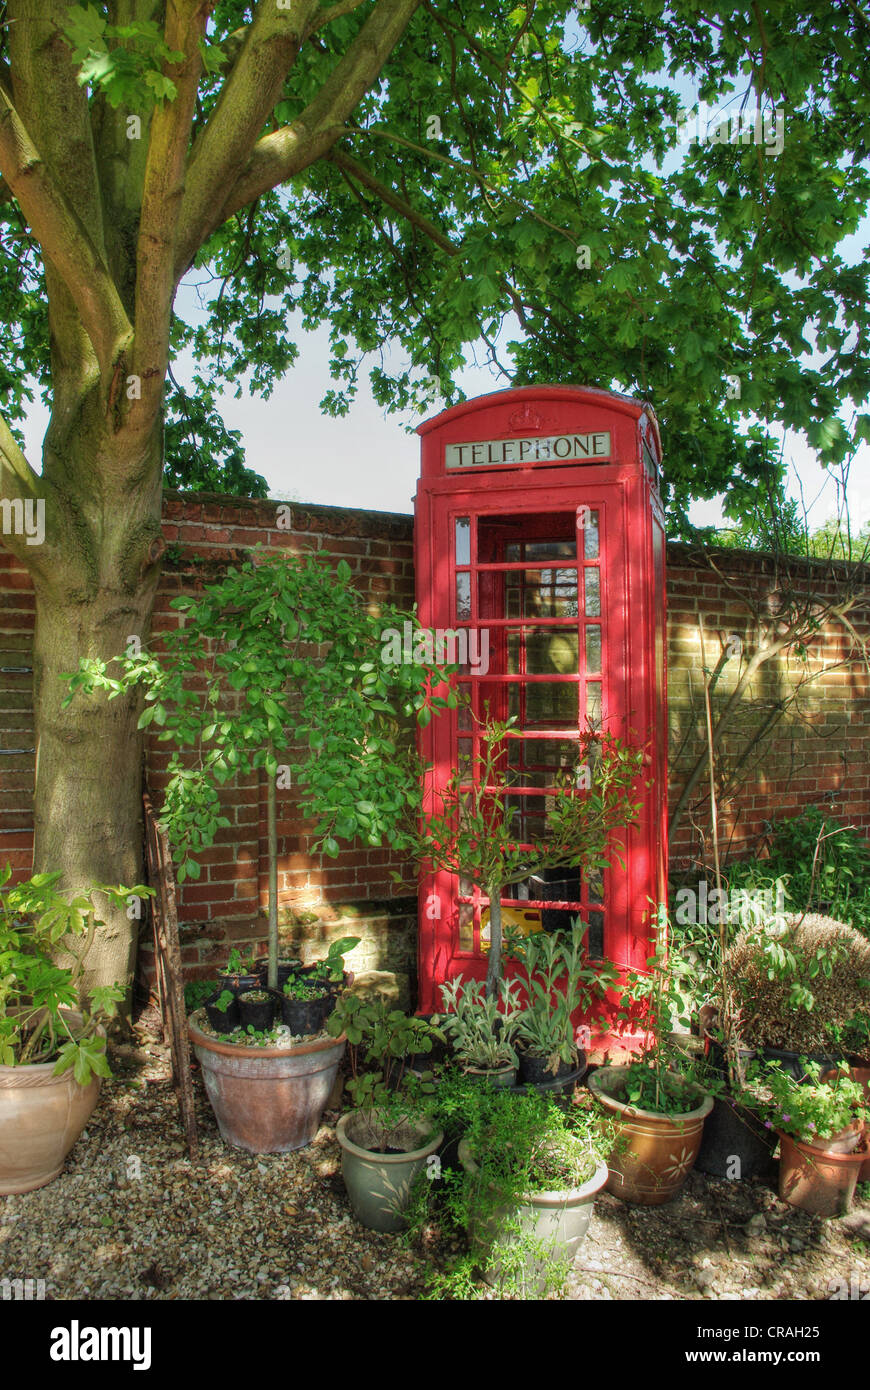 Old red telephone kiosk, recycled as a greenhouse, in the garden of Oakley House, Bedfordshire - Stock Image